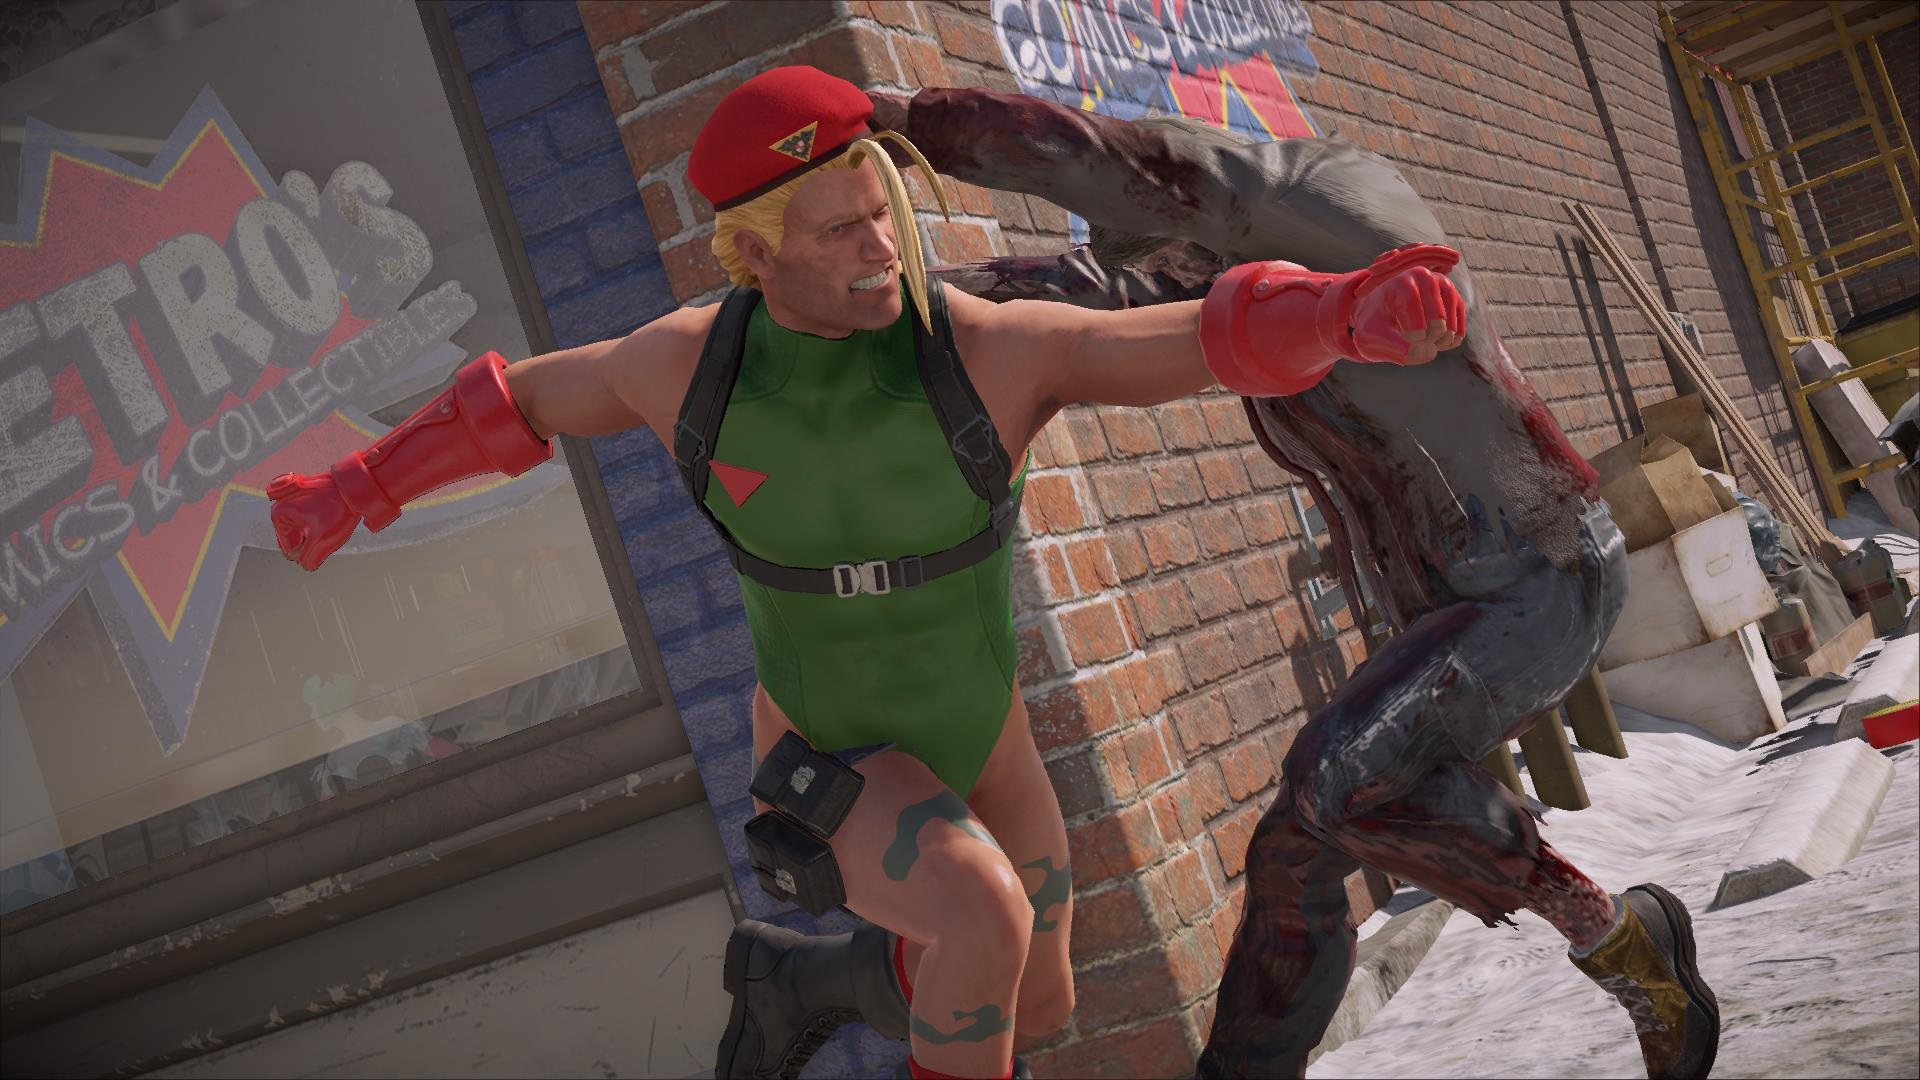 Dead Rising 4: Frank's Big Package - Cammy West?